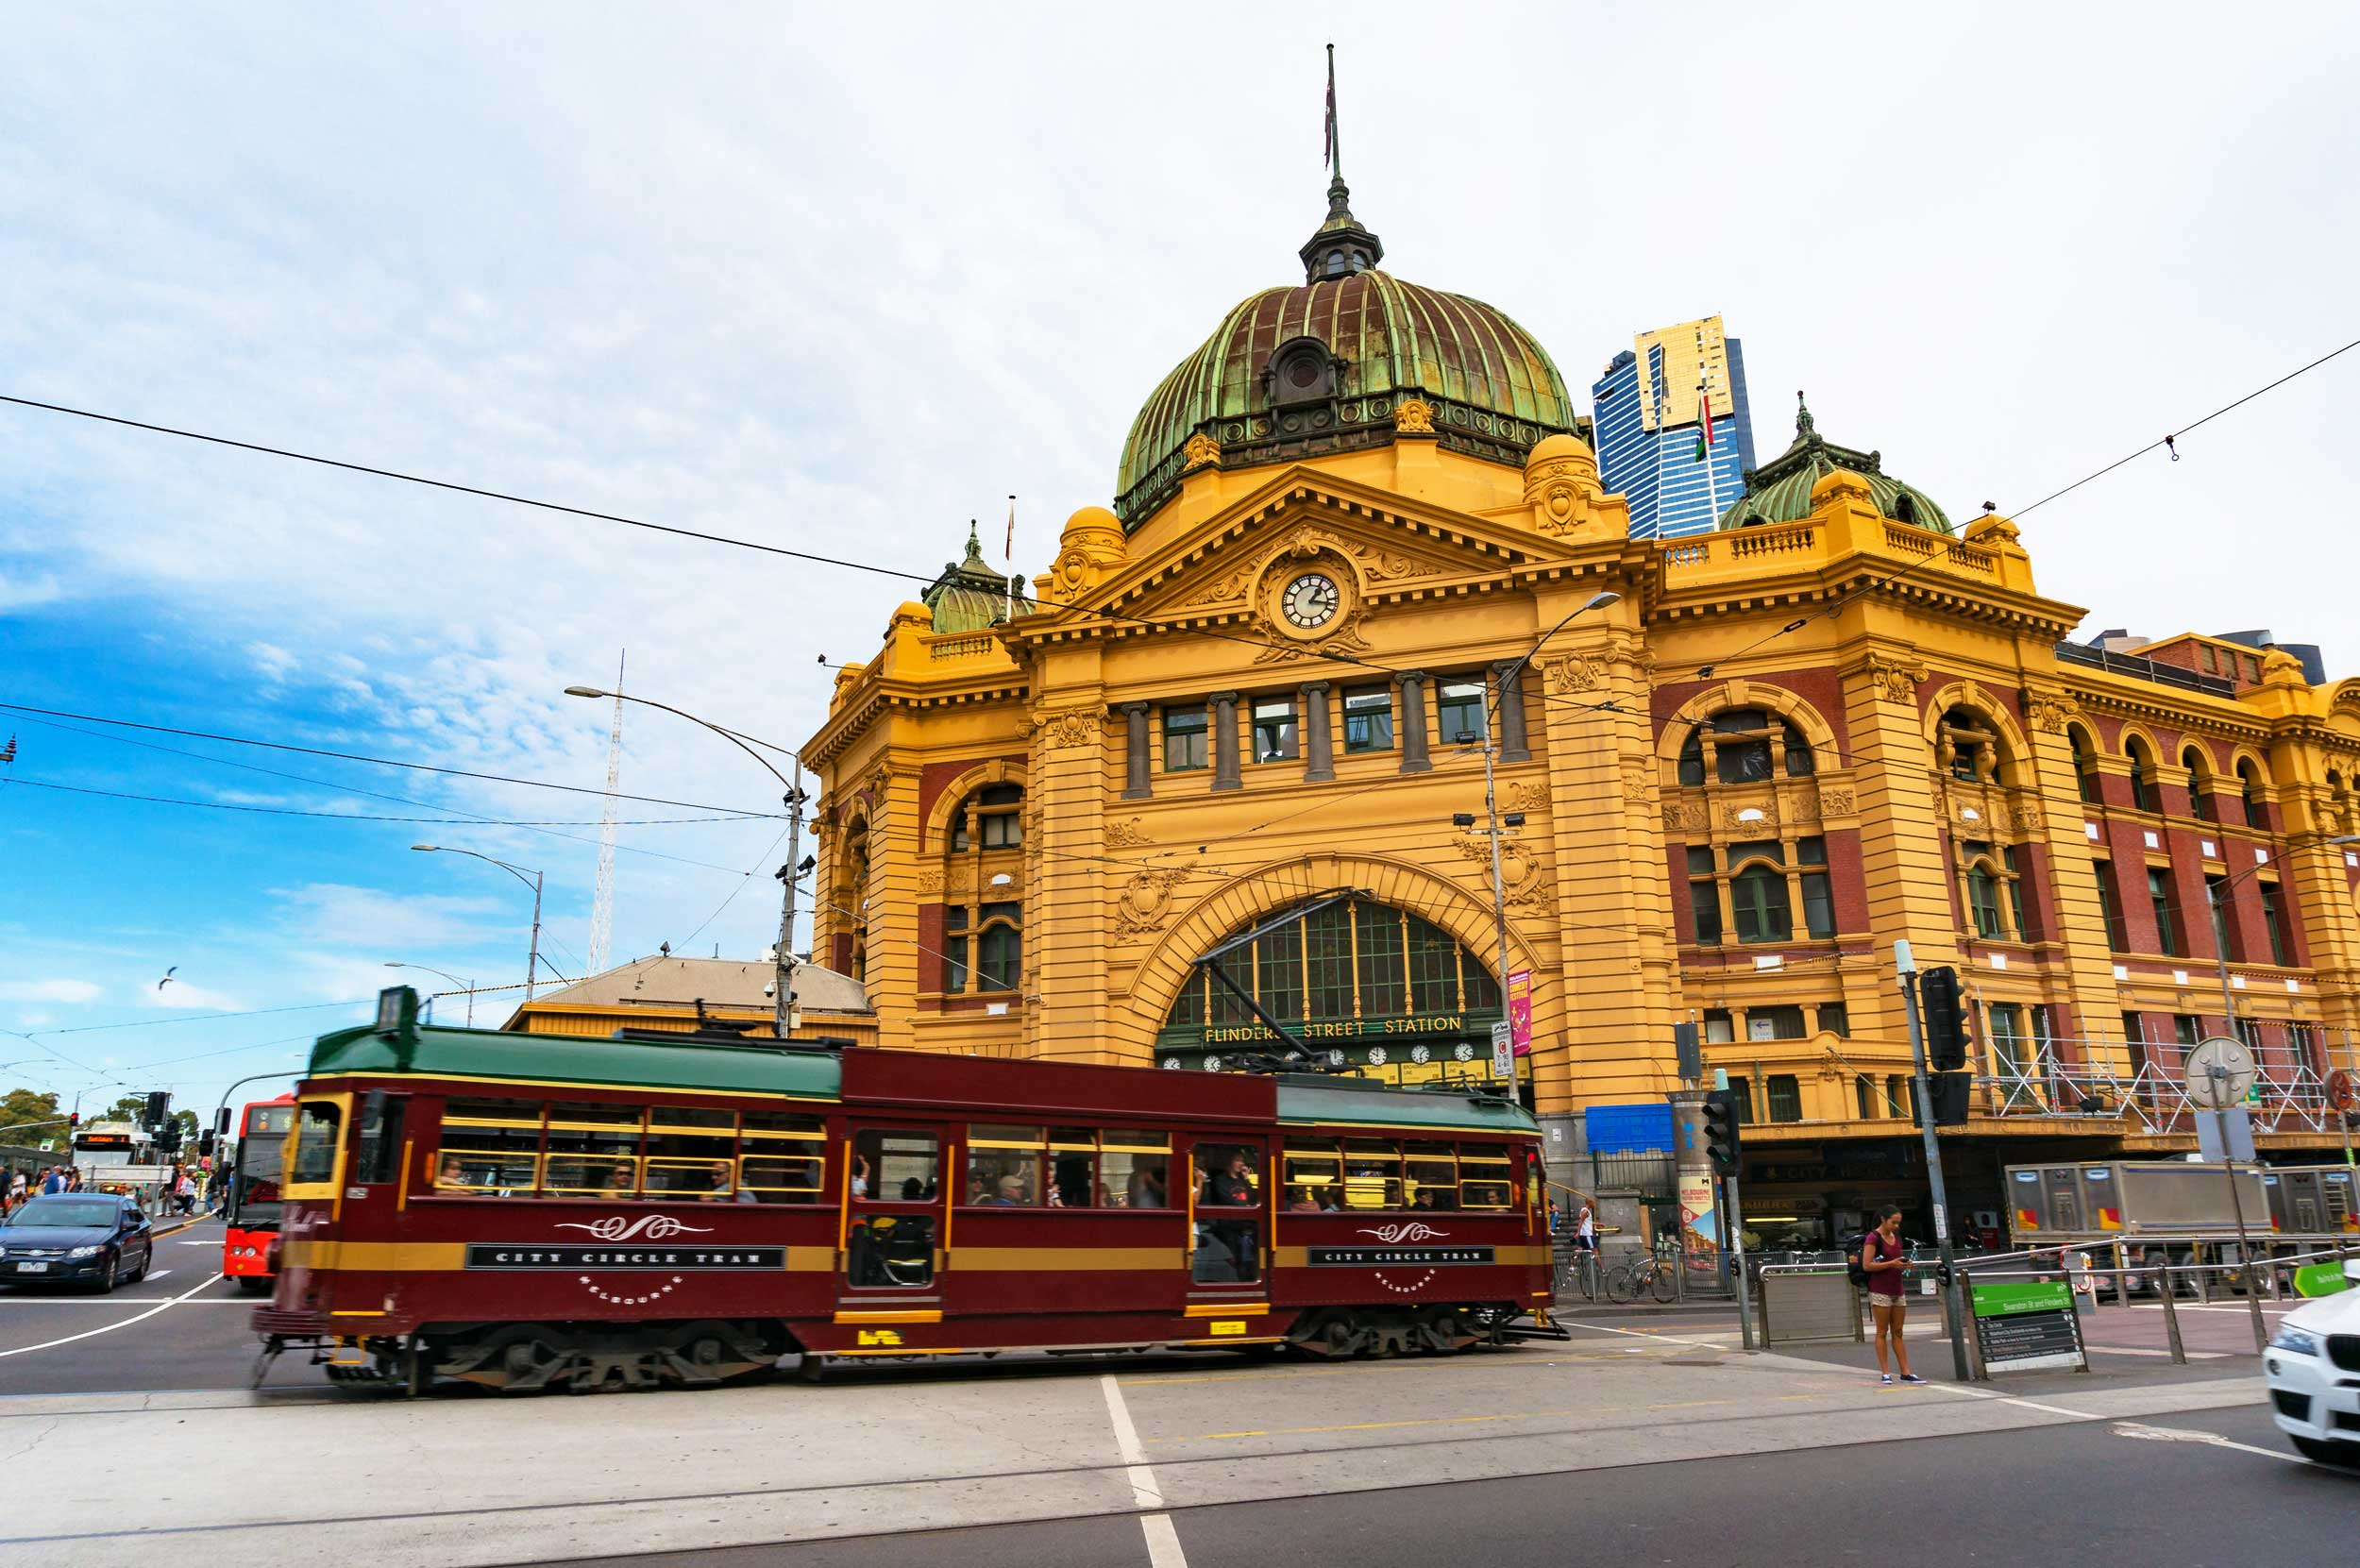 Tram passing a historic domed building, Melbourne